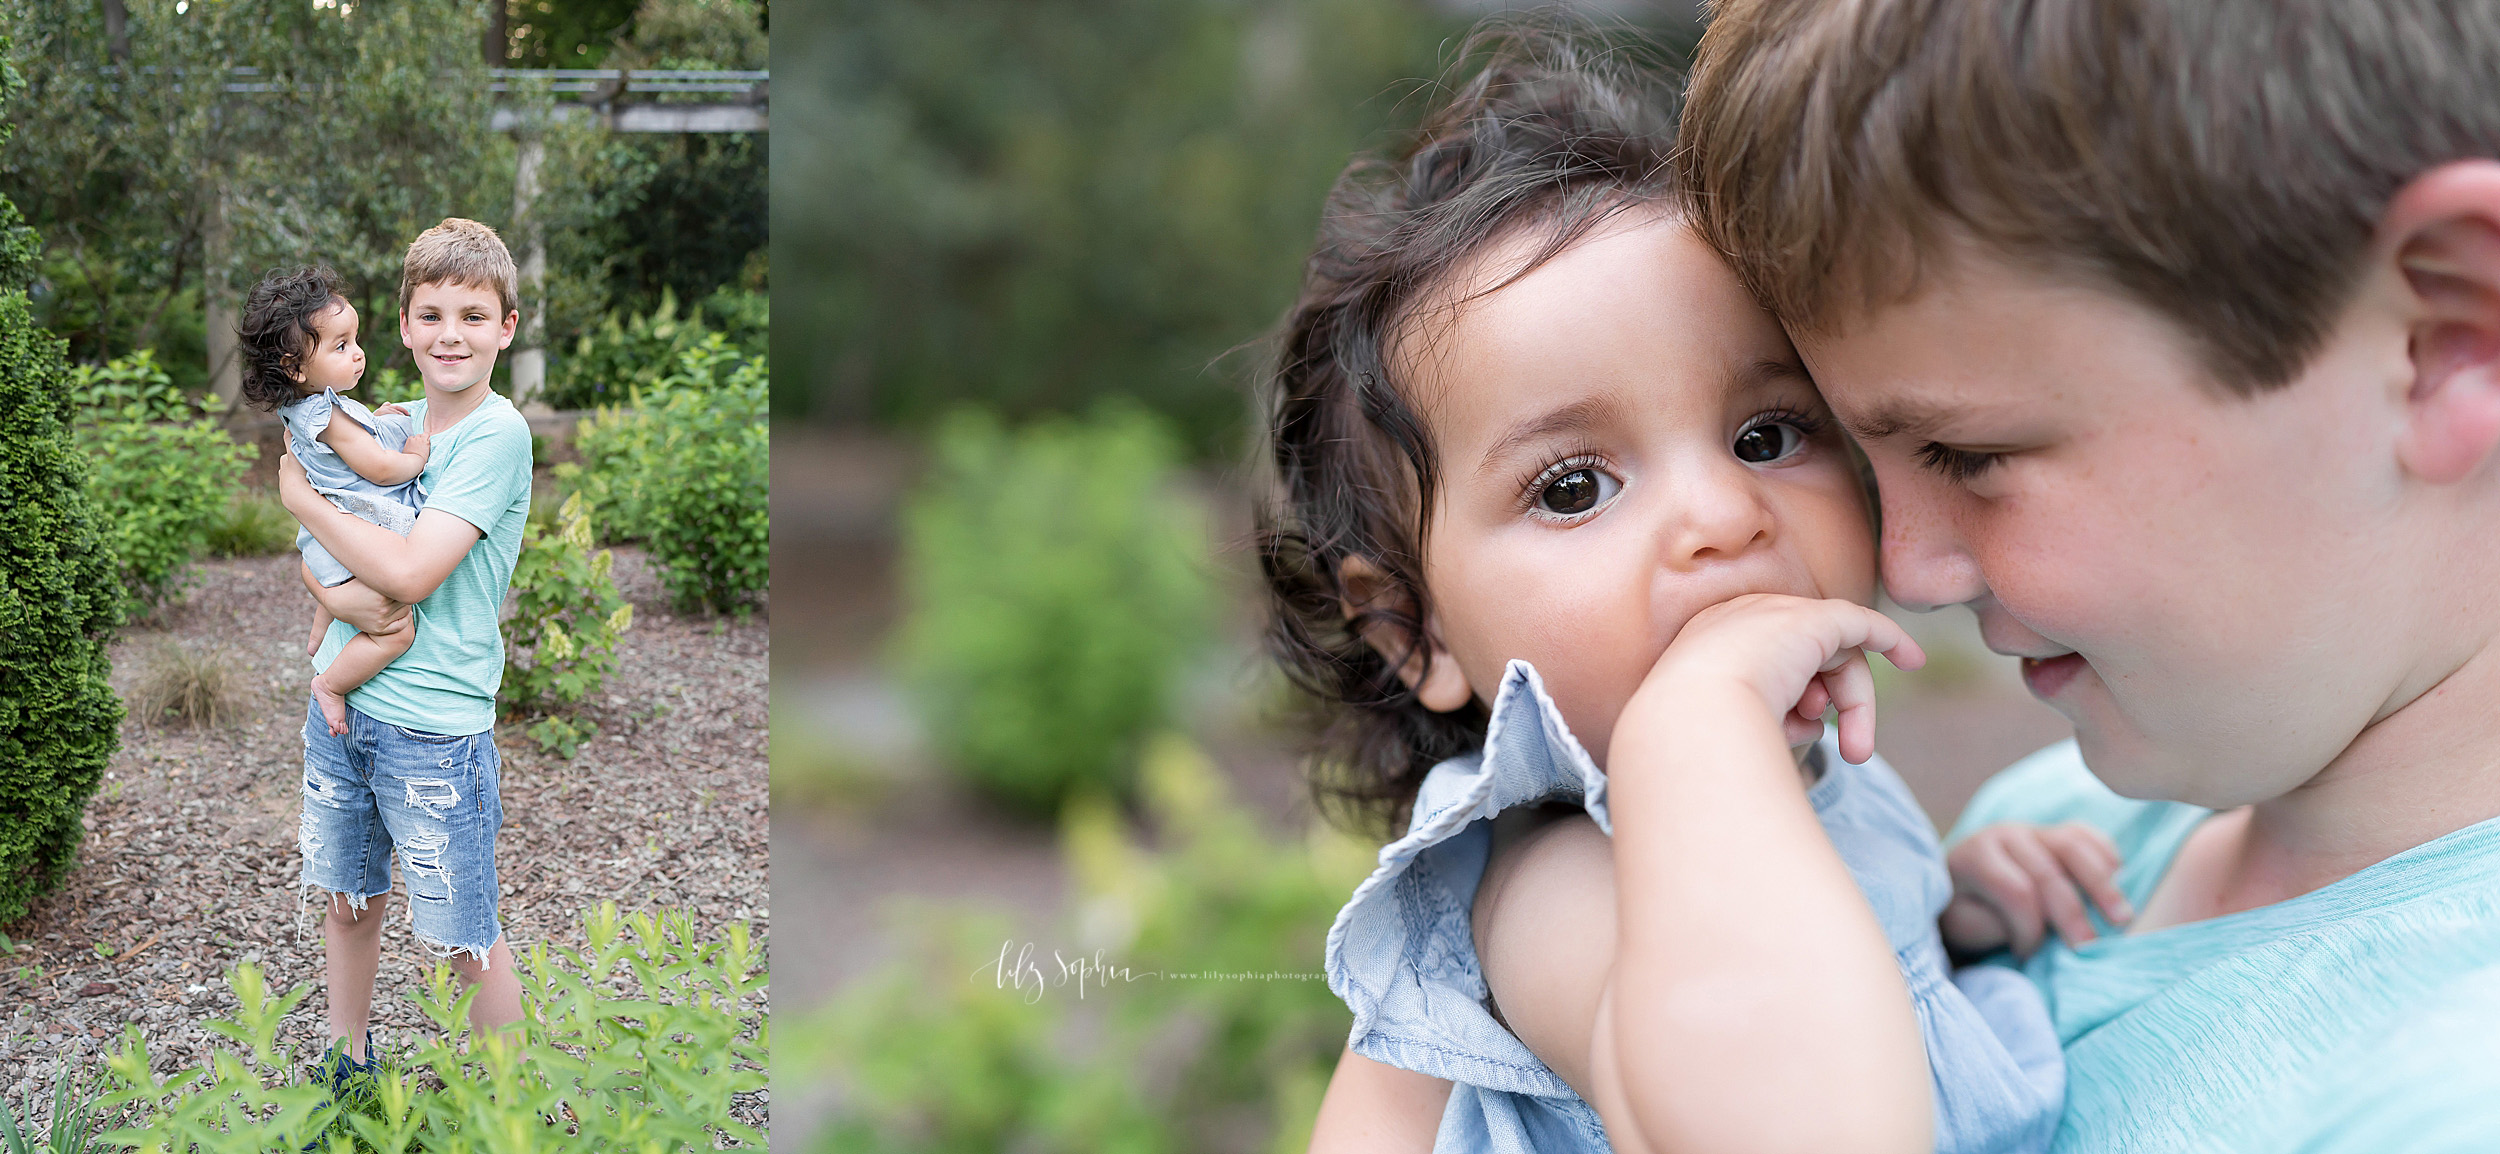 Split image photo of siblings taken by Lily Sophia Photography in an Atlanta garden. The older brother is holding his baby sister as she looks at him. In the second close-up shot, the older brother has his forehead against his baby sister as she puts her fingers in her mouth.